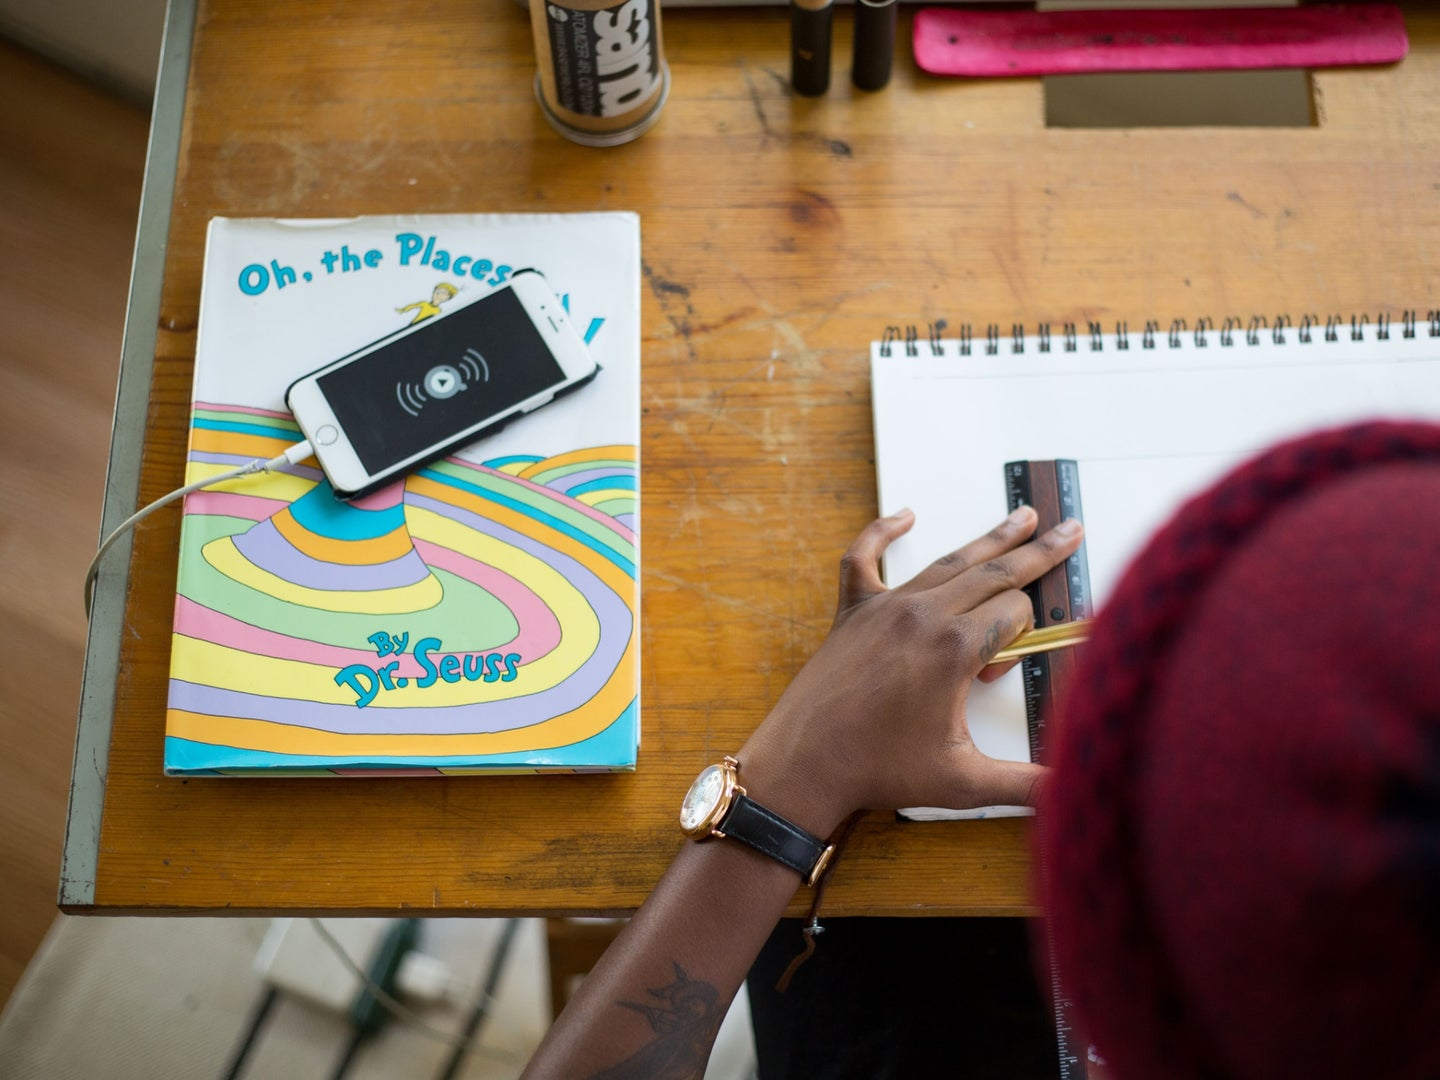 A person sitting at a desk, drawing, with their phone battery charging on a cable next to them.